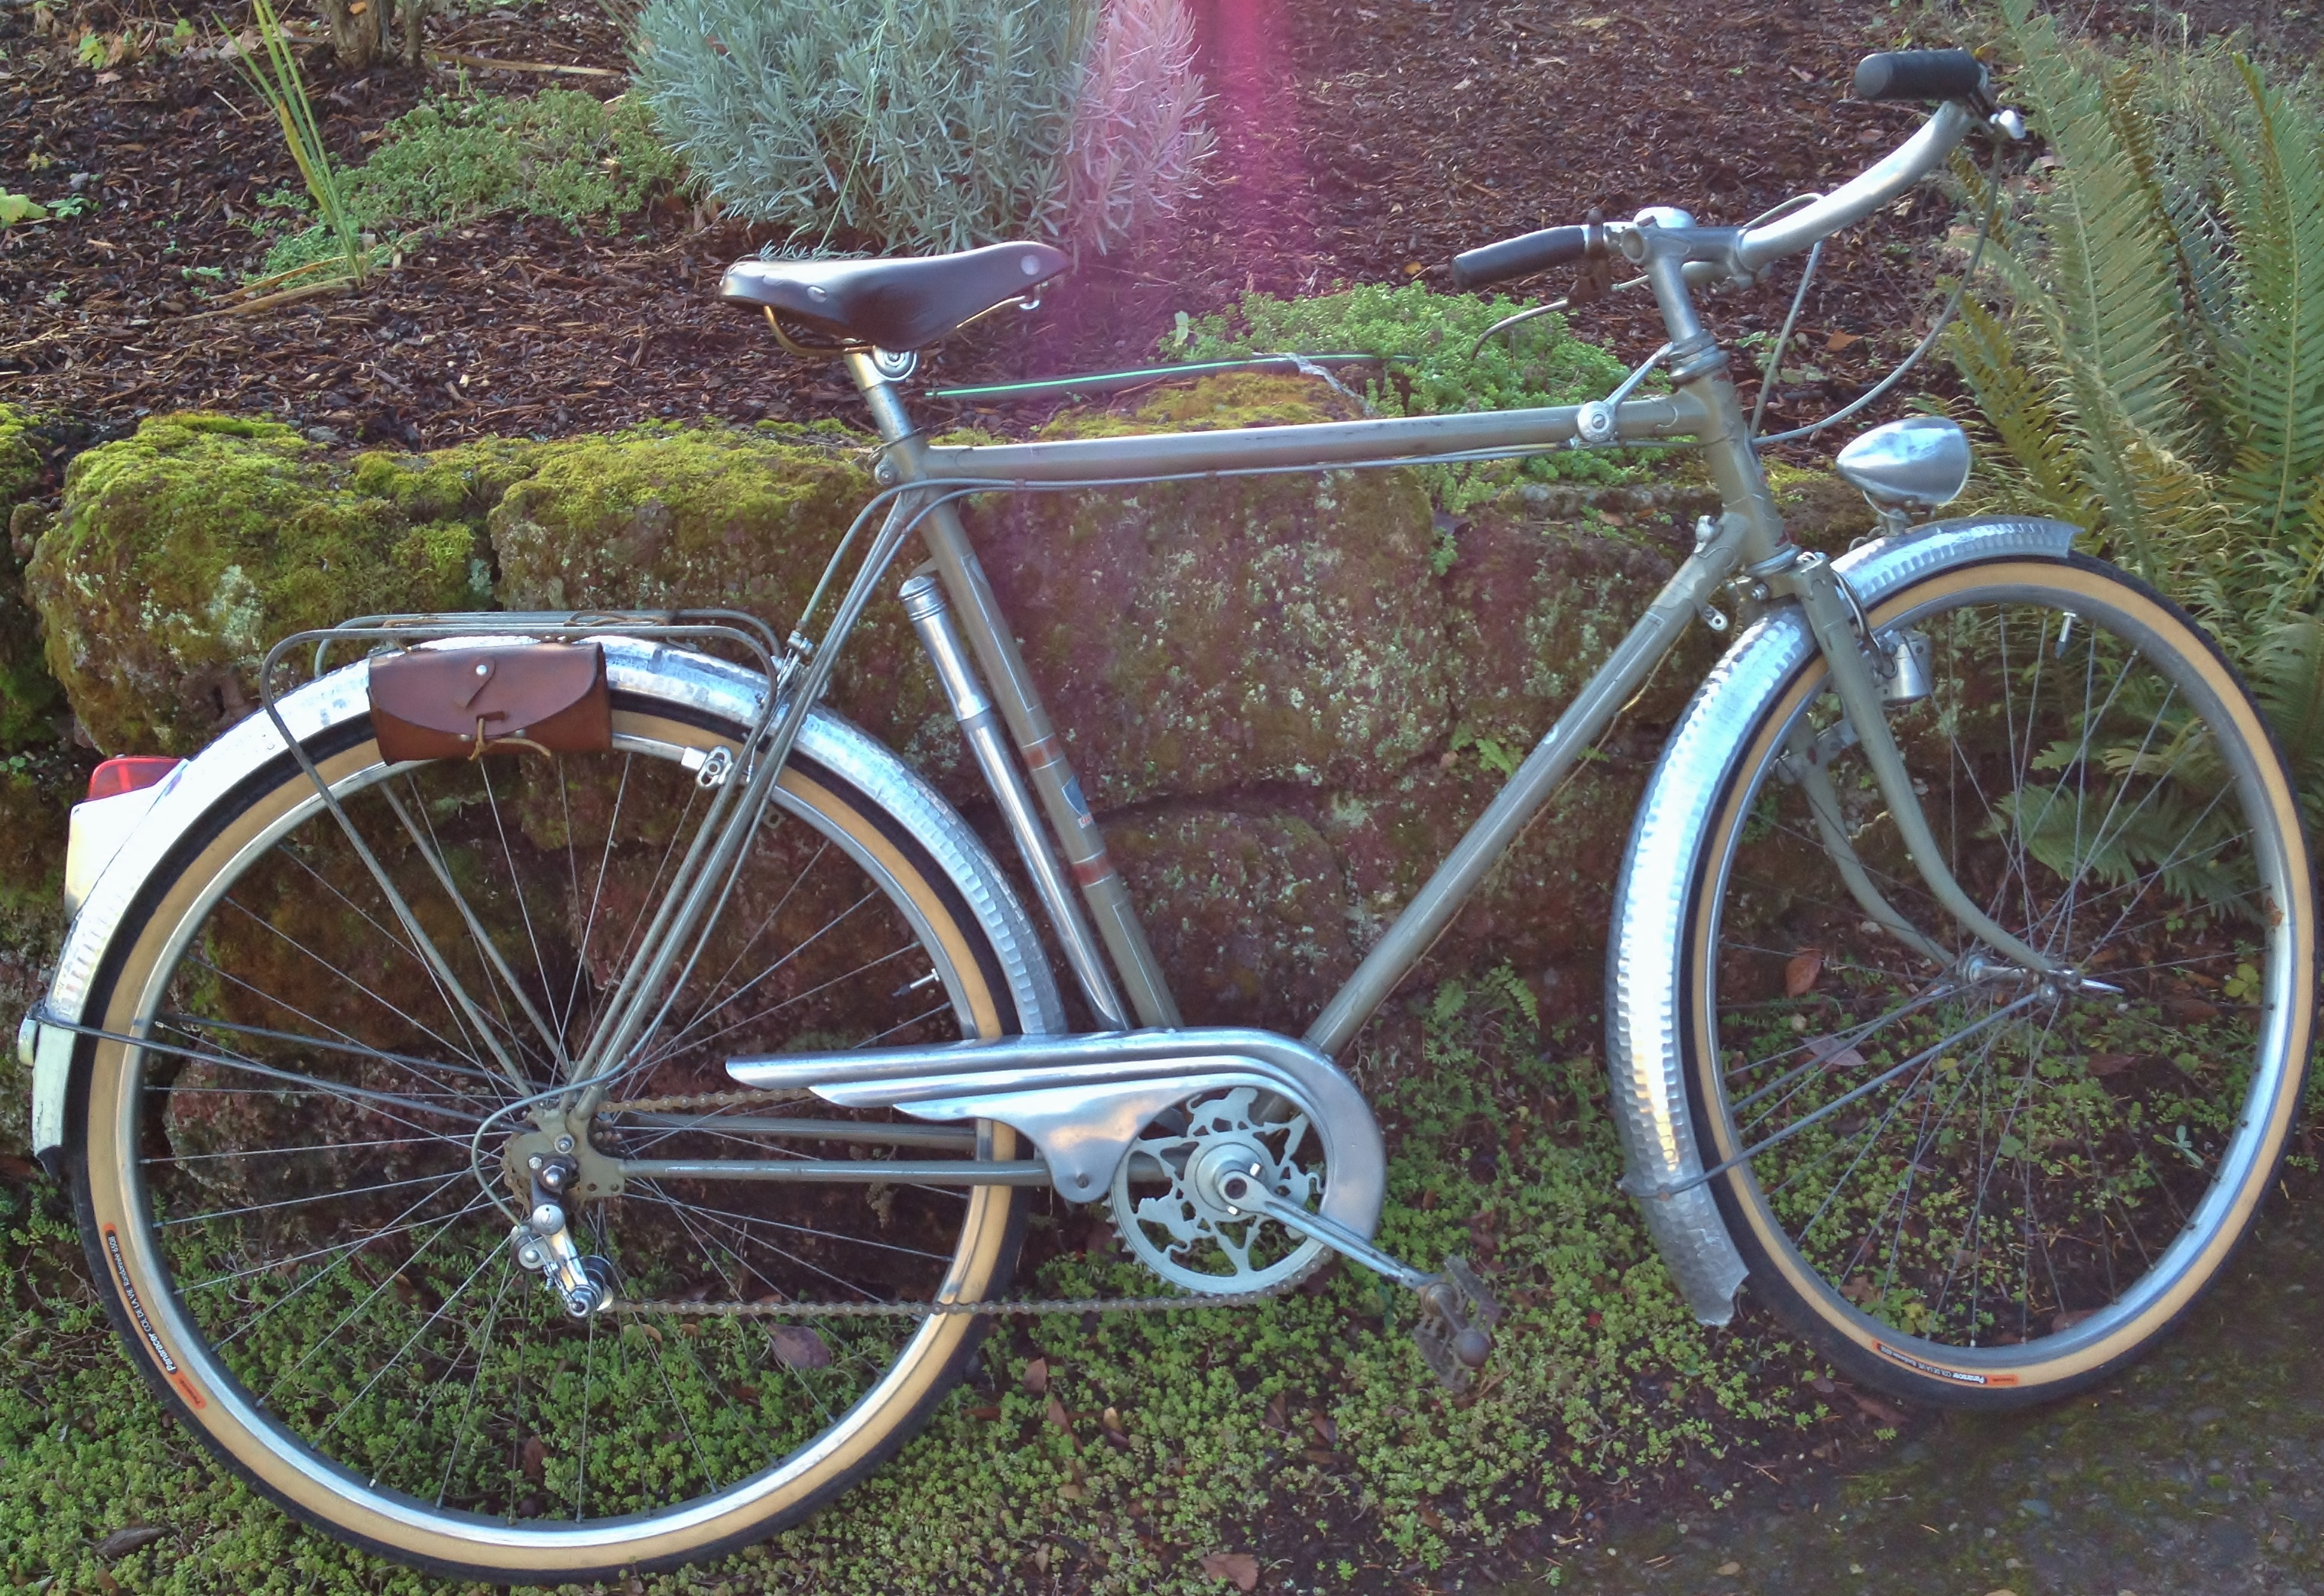 1940 S Peugeot Polymultipliee Gent S Bike Restoring Vintage Bicycles From The Hand Built Era